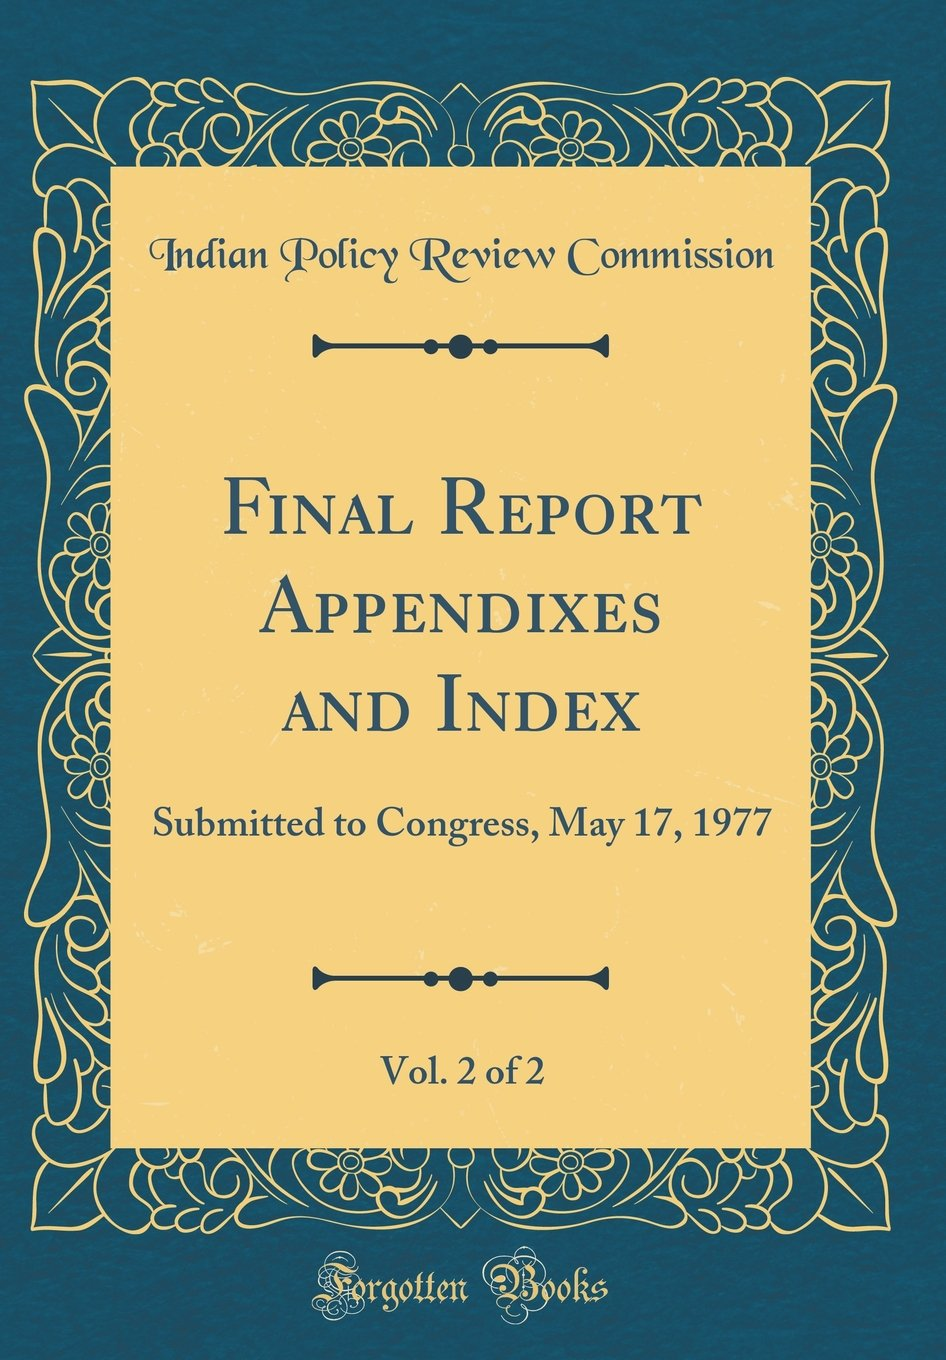 Final Report Appendixes and Index, Vol. 2 of 2: Submitted to Congress, May 17, 1977 (Classic Reprint) pdf epub